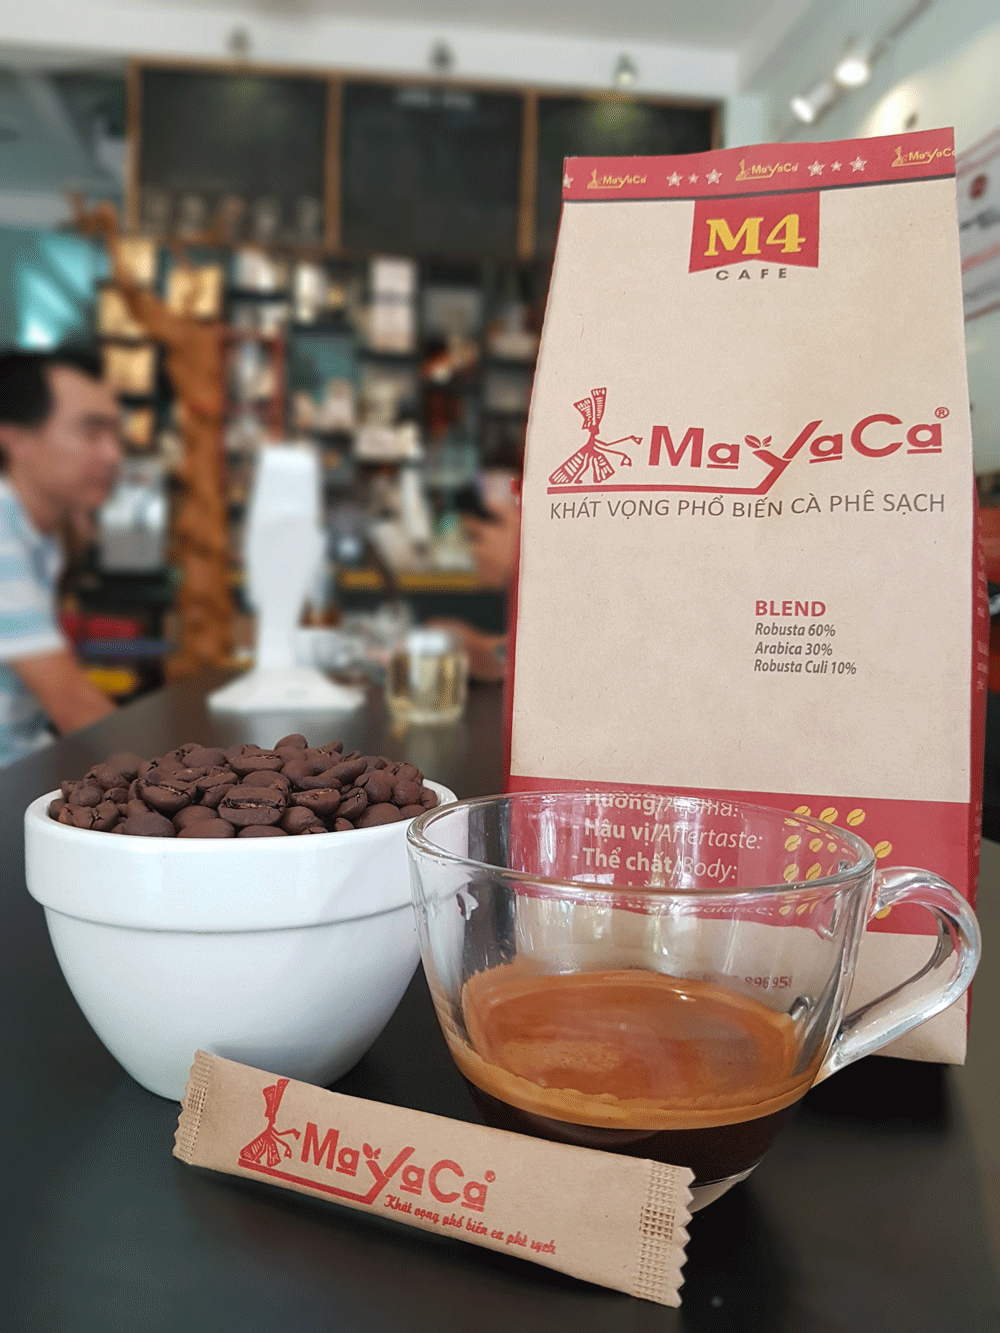 mayaca-coffee-m4-2